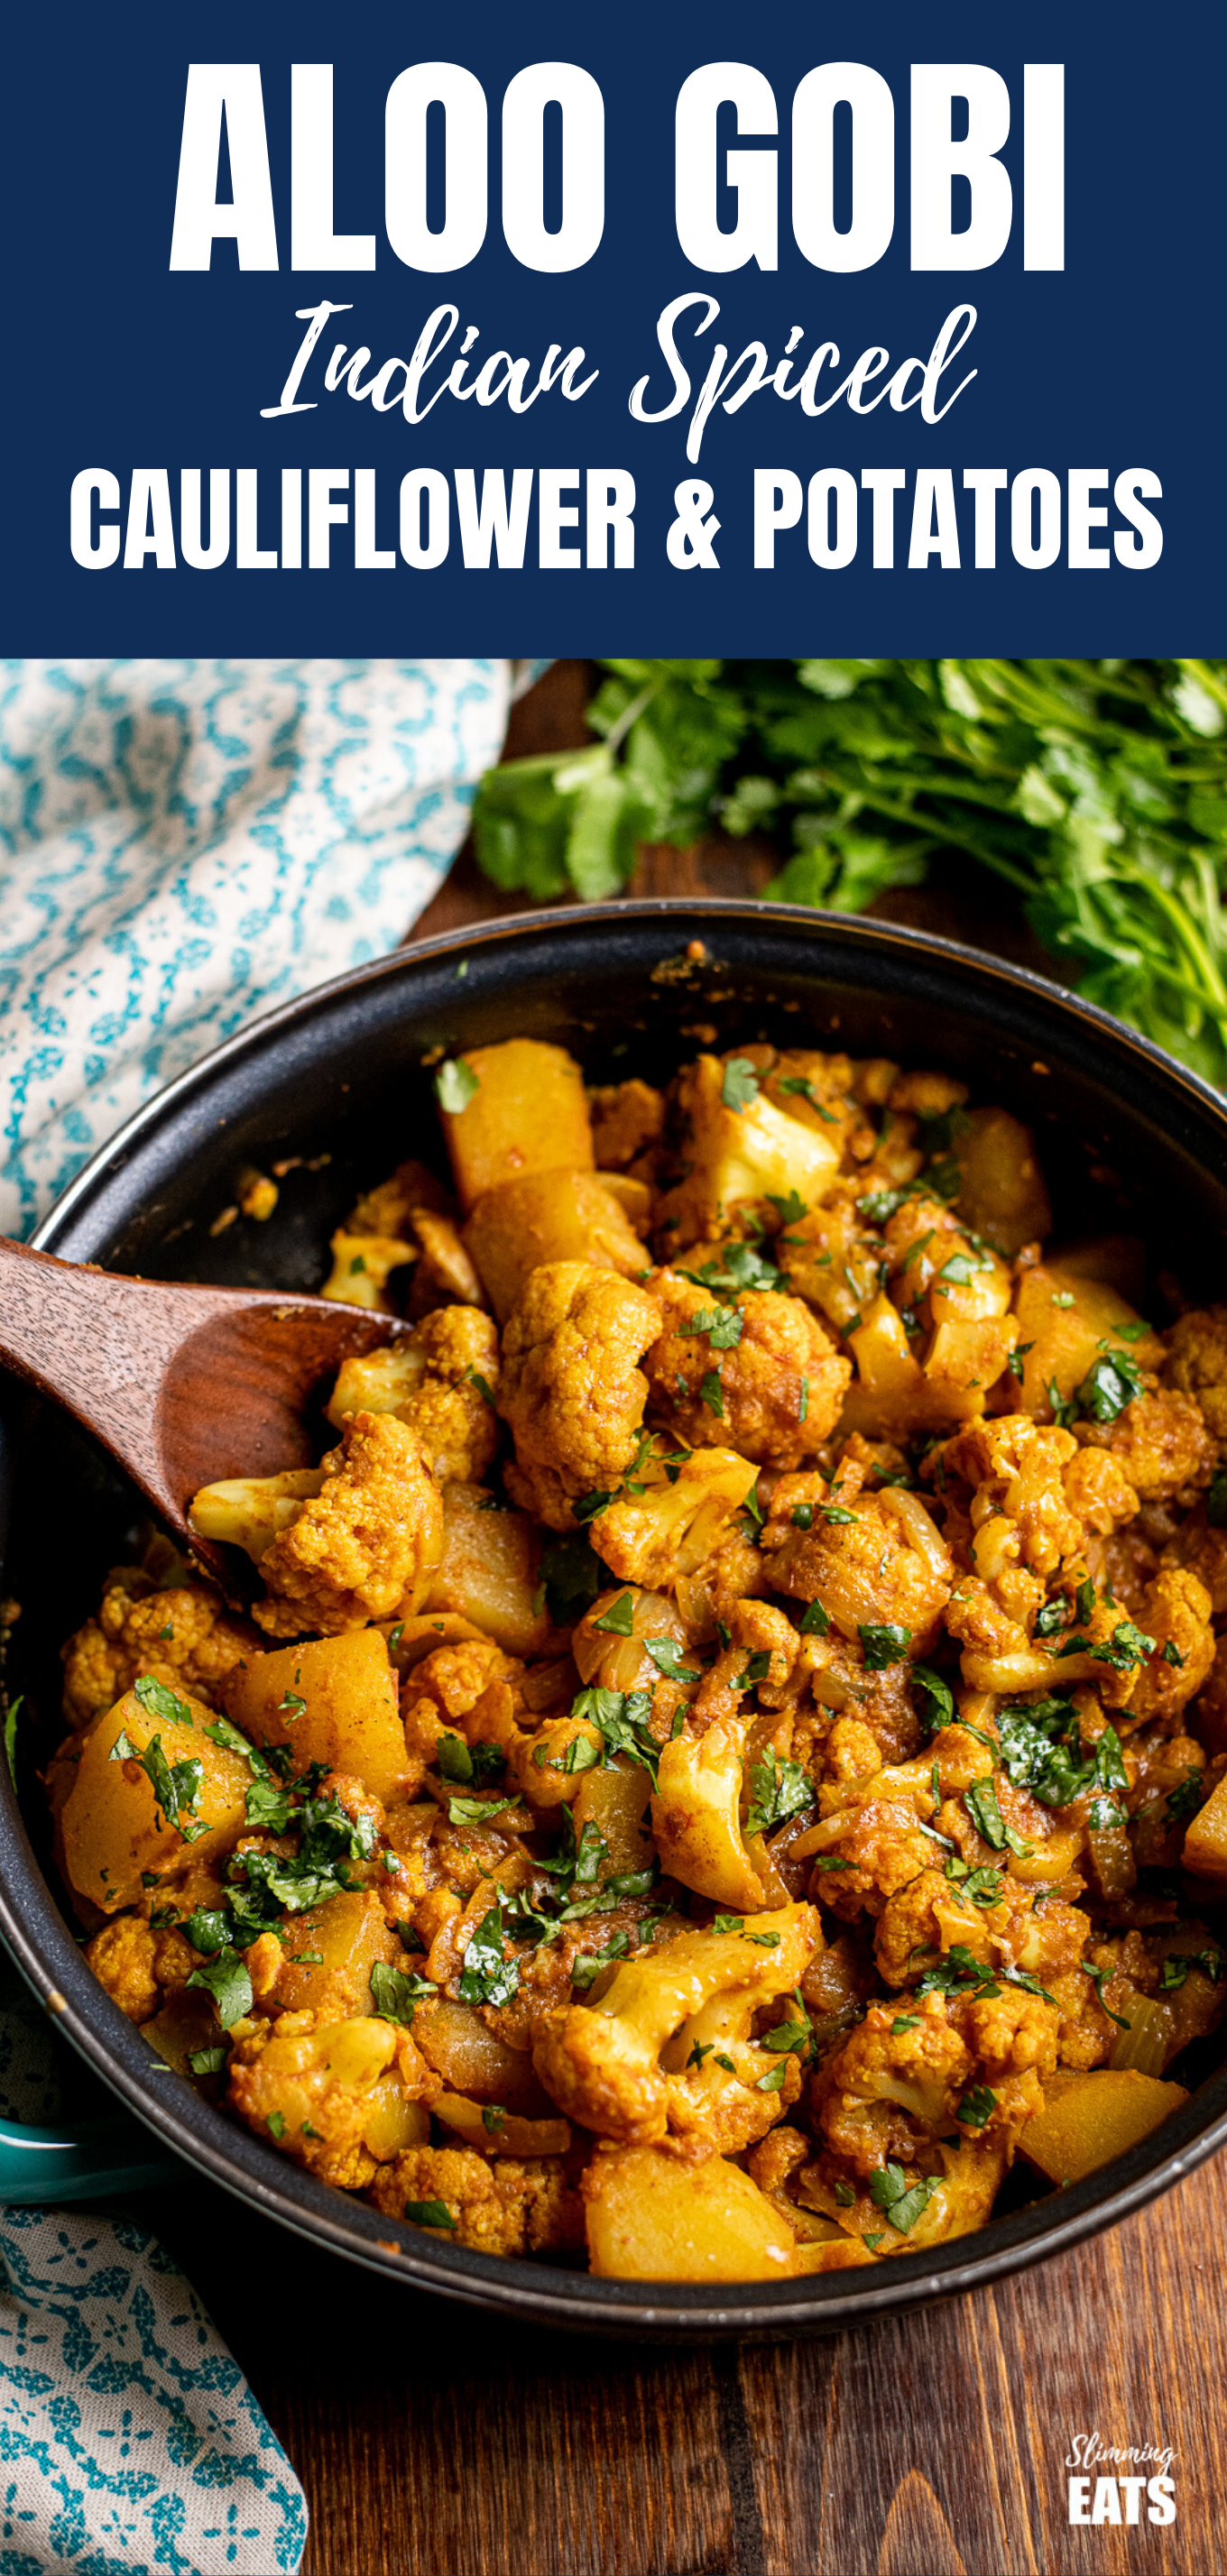 Aloo Gobi (Indian Spiced Potatoes and Cauliflower) | Slimming Eats